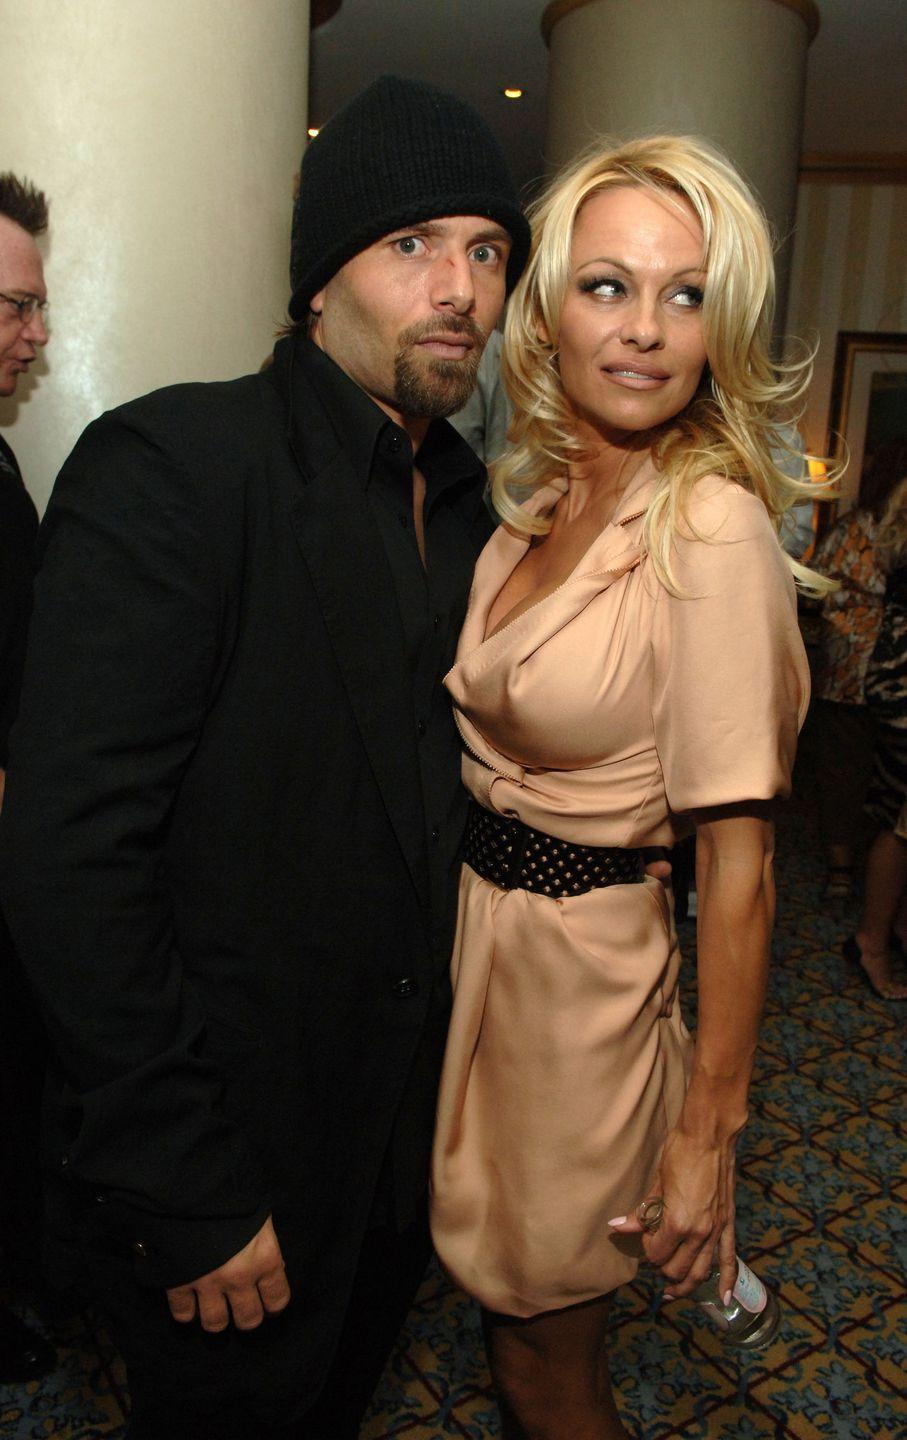 """<p>Pamela Anderson wed her longtime friend, Rick Salomon, in Las Vegas in October 2007. It was the Baywatch star's third marriage, but it didn't last long, as she <a href=""""https://www.latimes.com/entertainment/gossip/la-et-mg-pamela-anderson-rick-salomon-divorce-20150429-story.html"""" rel=""""nofollow noopener"""" target=""""_blank"""" data-ylk=""""slk:petitioned for an annulment"""" class=""""link rapid-noclick-resp"""">petitioned for an annulment</a> two months later. </p><p>The couple's marriage was annulled in 2008 and Pamela reunited with her other ex-husband, Tommy Lee, shortly after. Ready for a curveball? In 2014, Pamela and Rick shocked everyone when they announced they'd secretly tied the knot for the second time. Their union <a href=""""https://www.hellomagazine.com/celebrities/2014070919818/pamela-anderson-divorce-rick-salmon-second-time/"""" rel=""""nofollow noopener"""" target=""""_blank"""" data-ylk=""""slk:lasted six months"""" class=""""link rapid-noclick-resp"""">lasted six months</a> this time.</p>"""